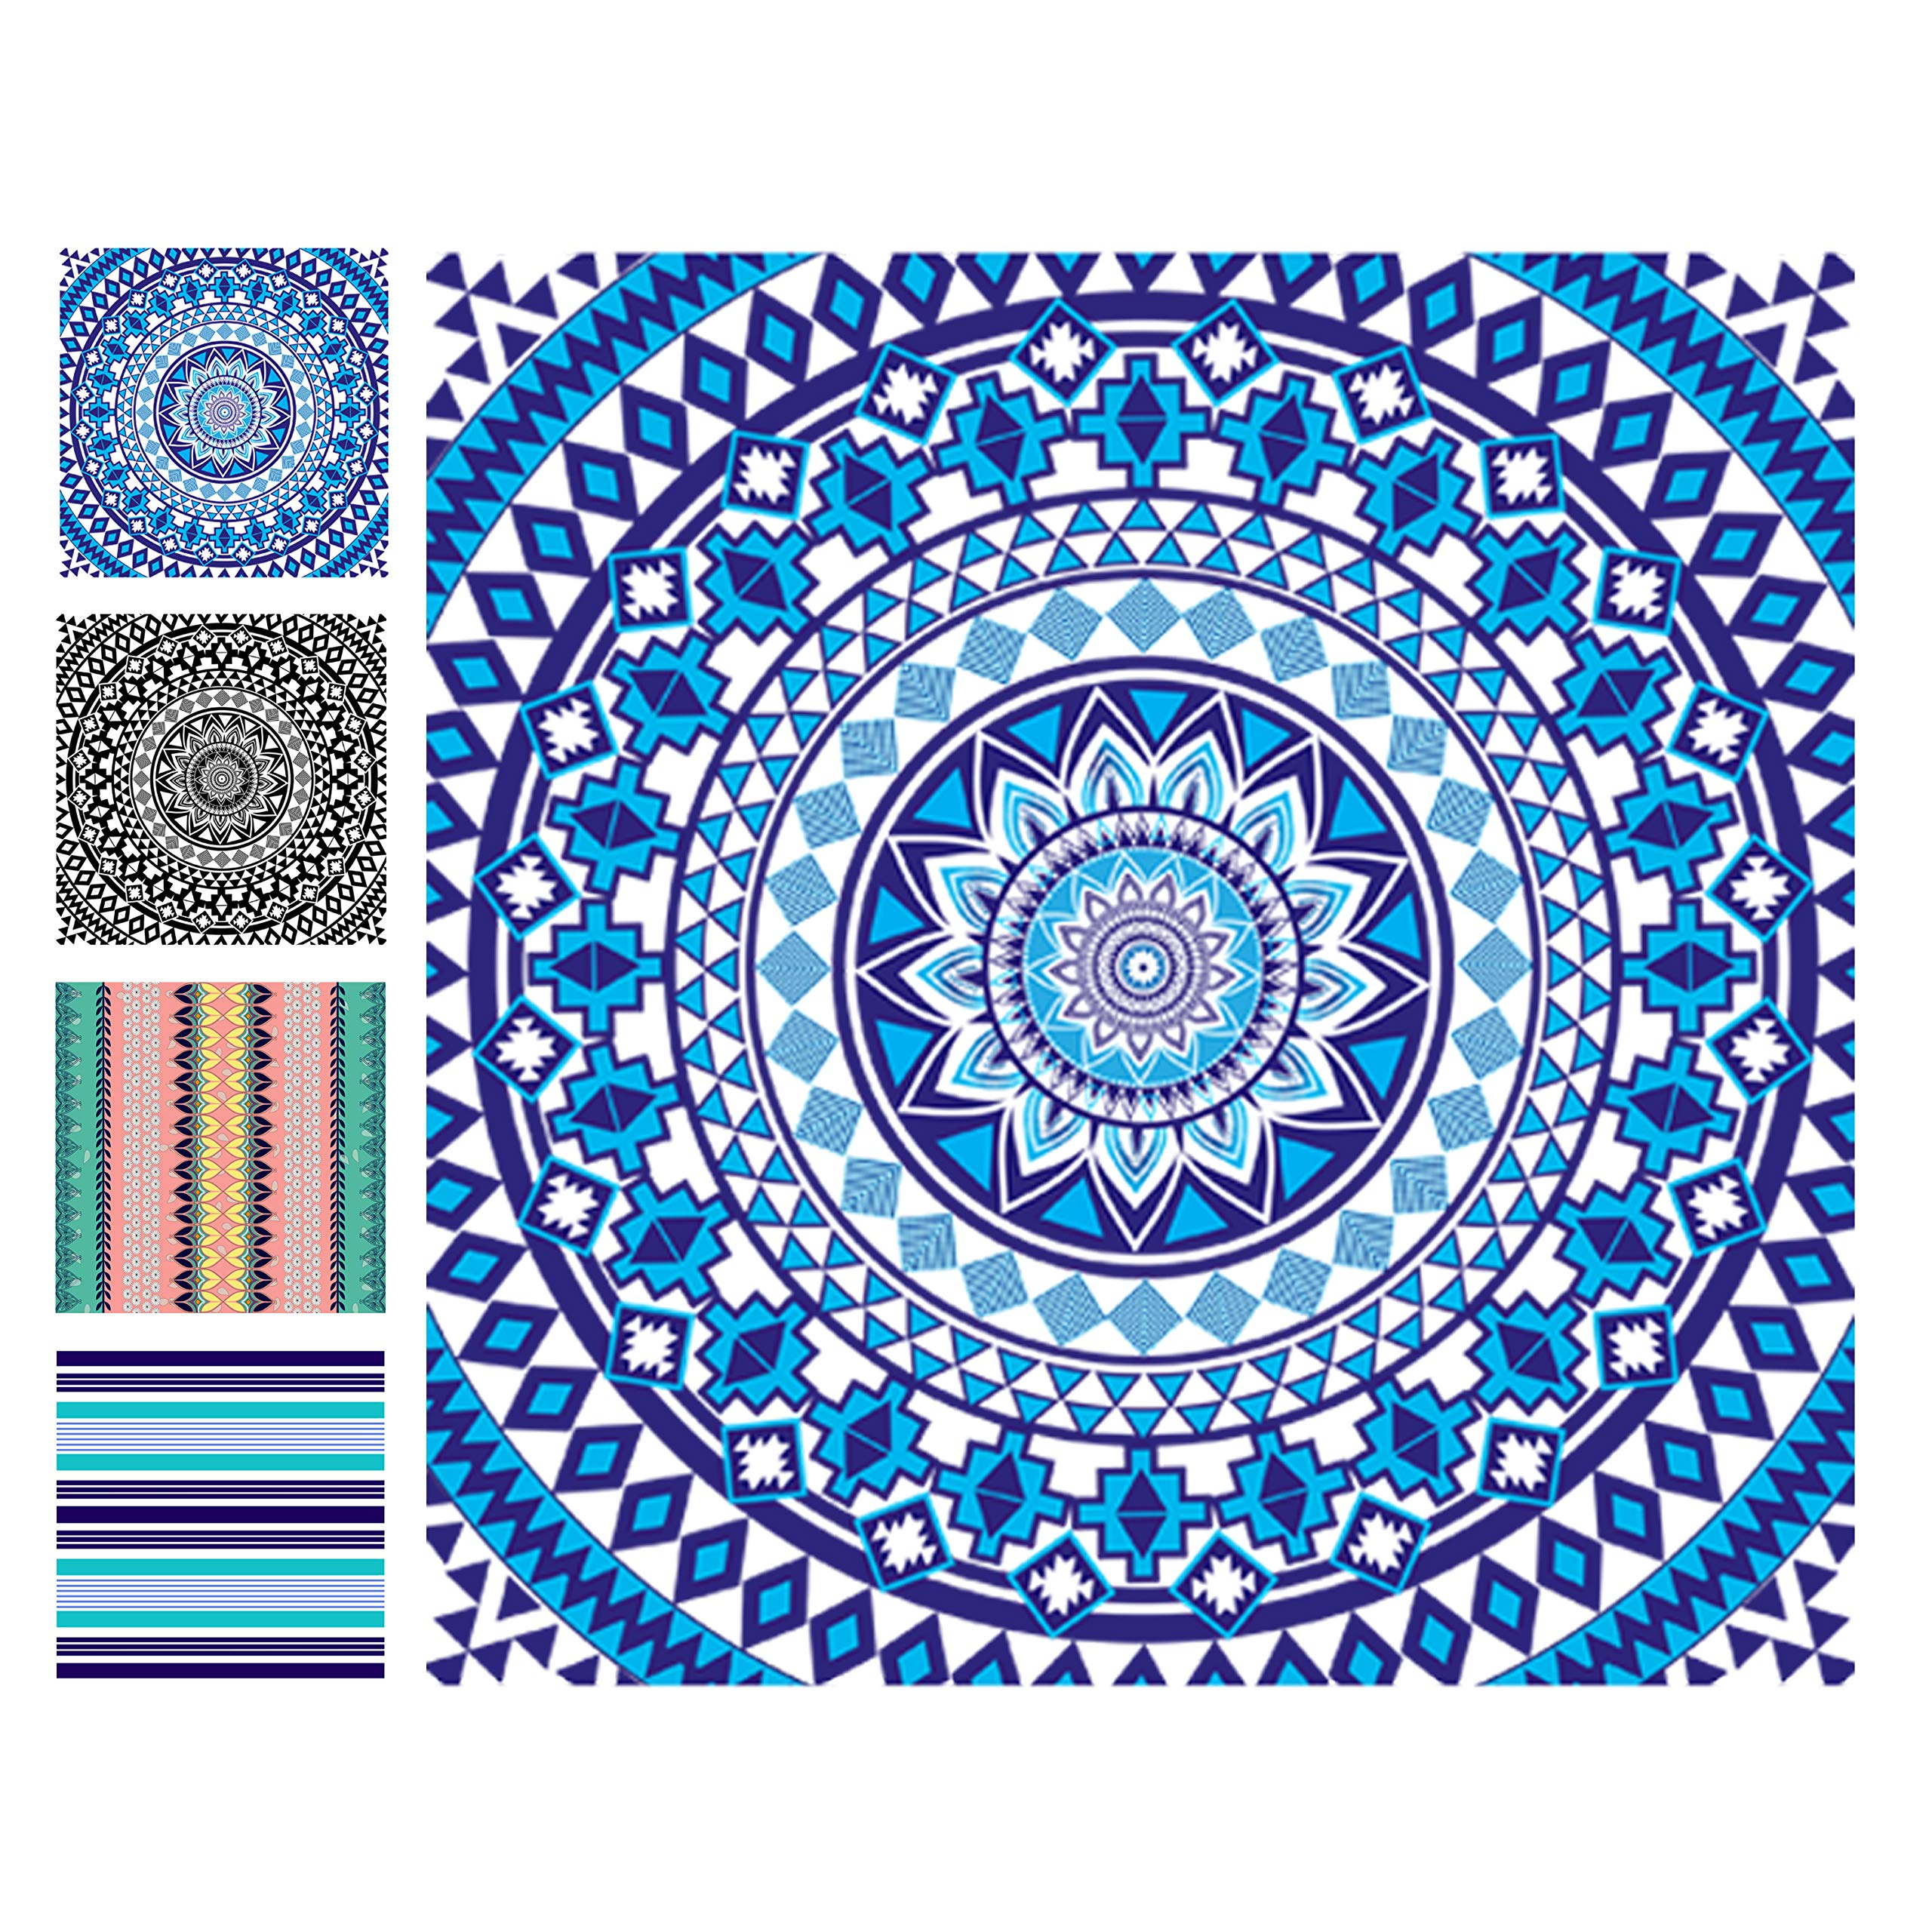 Elite Trend Microfiber Beach Towel for Travel:Oversized XL 78 x 35, 63x63,71x31Inch Quick Drying, Lightweight, Fast Dry Shower & Body Towels, Sand Free, Perfect (W-Blue Beauty, Family (72X72-INCH))